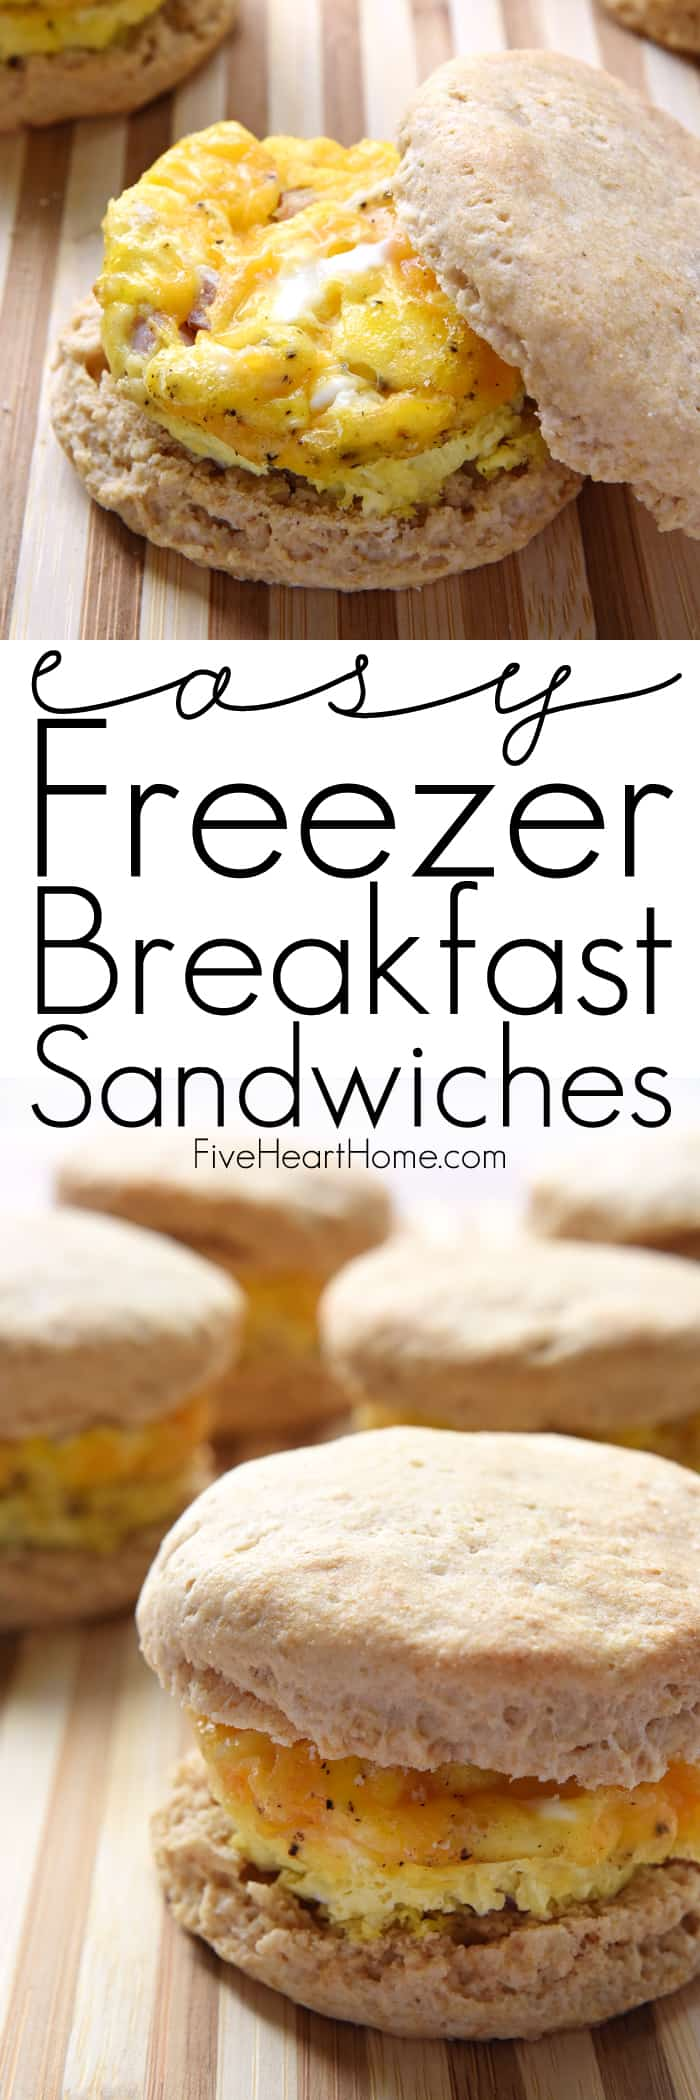 Easy Freezer Breakfast Sandwiches with Collage and Text Overlay